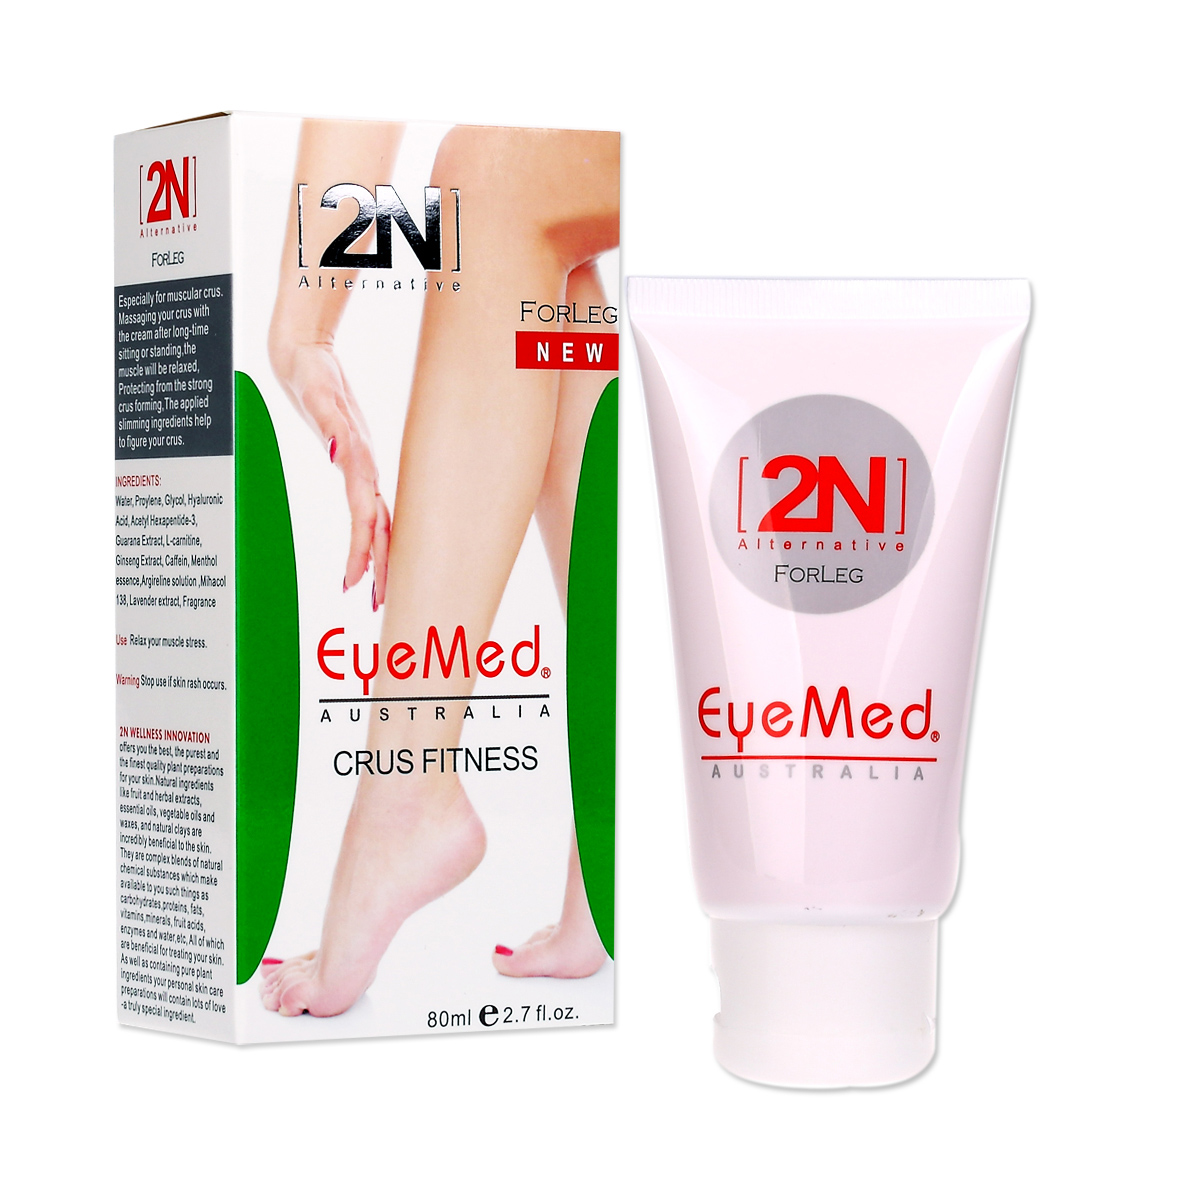 Authentic 2n Leg calf crus fitness slimming creams anti cellulite gel weight loss lose weights slim cream health care product